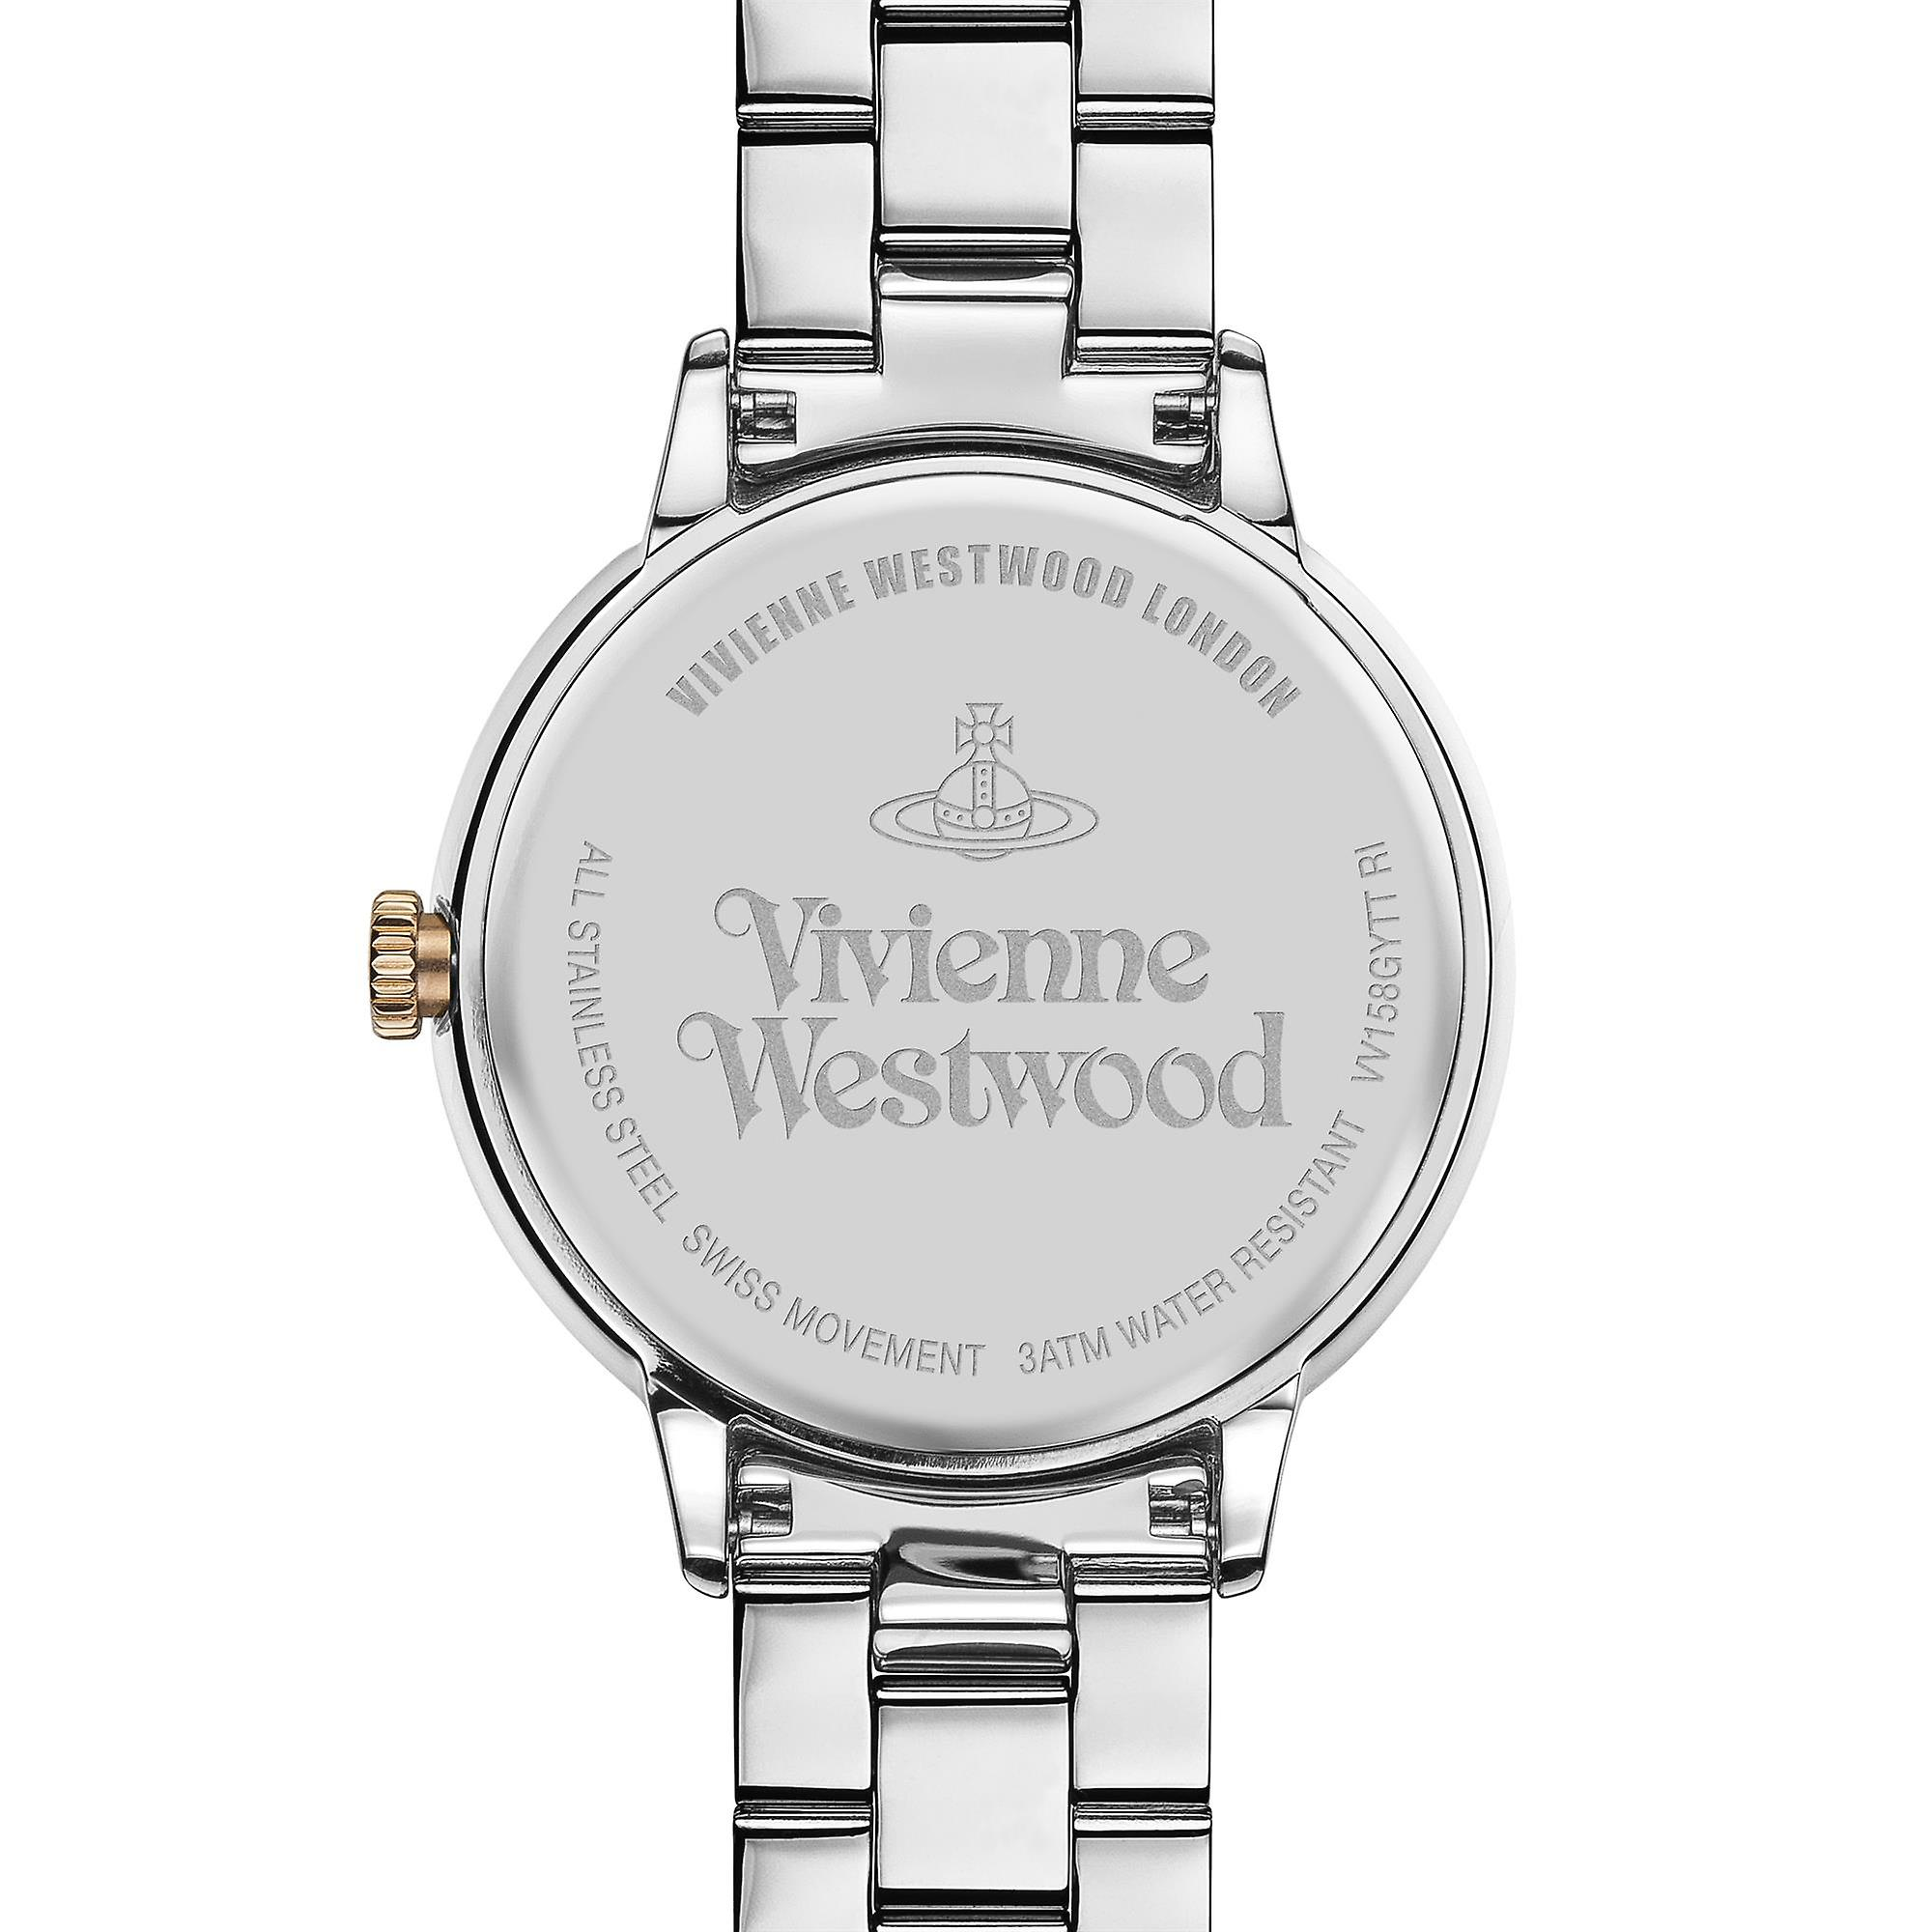 Vivienne Westwood Portobello Quartz Two Tone Rose Gold Silver Stainless Steel LadiesWatch